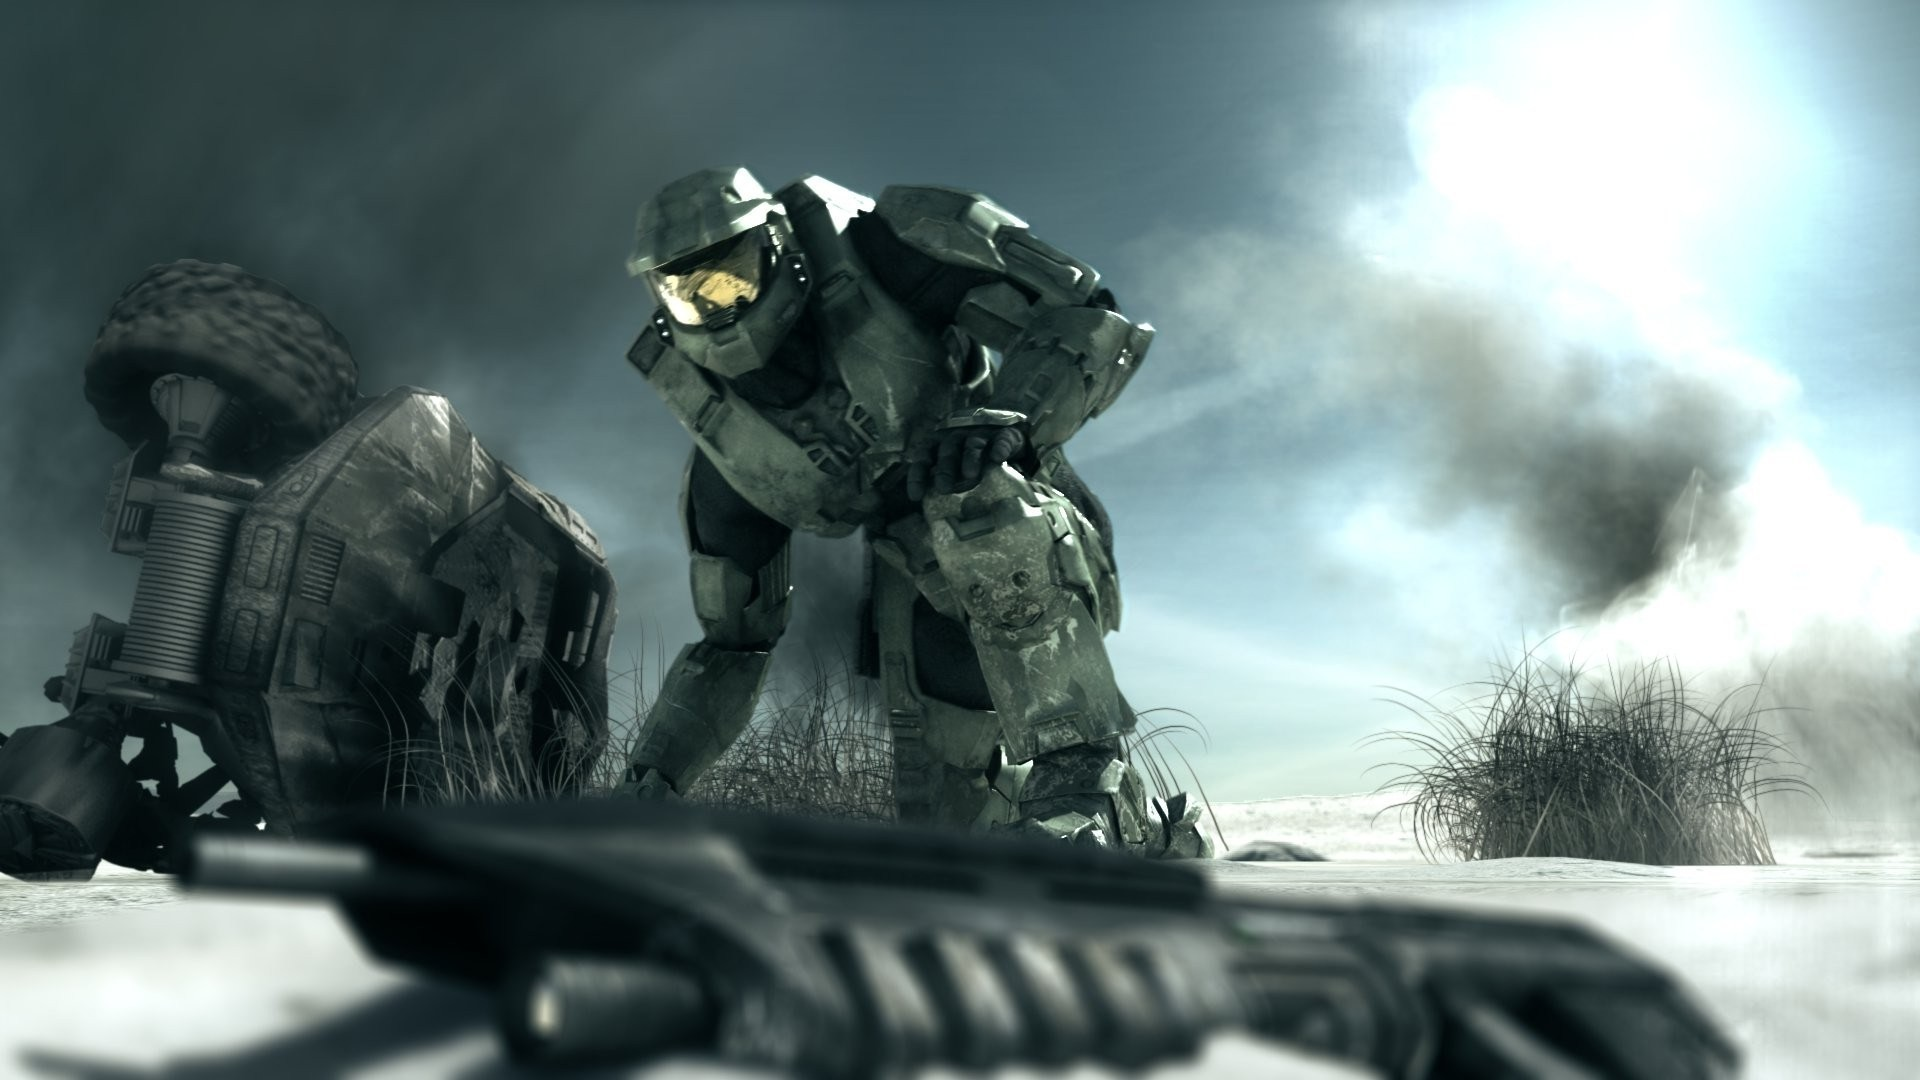 1920x1080 ... Great Master Chief Images Wallpaper HD Wallpapers of Nature- Full HD 1080p  Desktop Backgrounds for